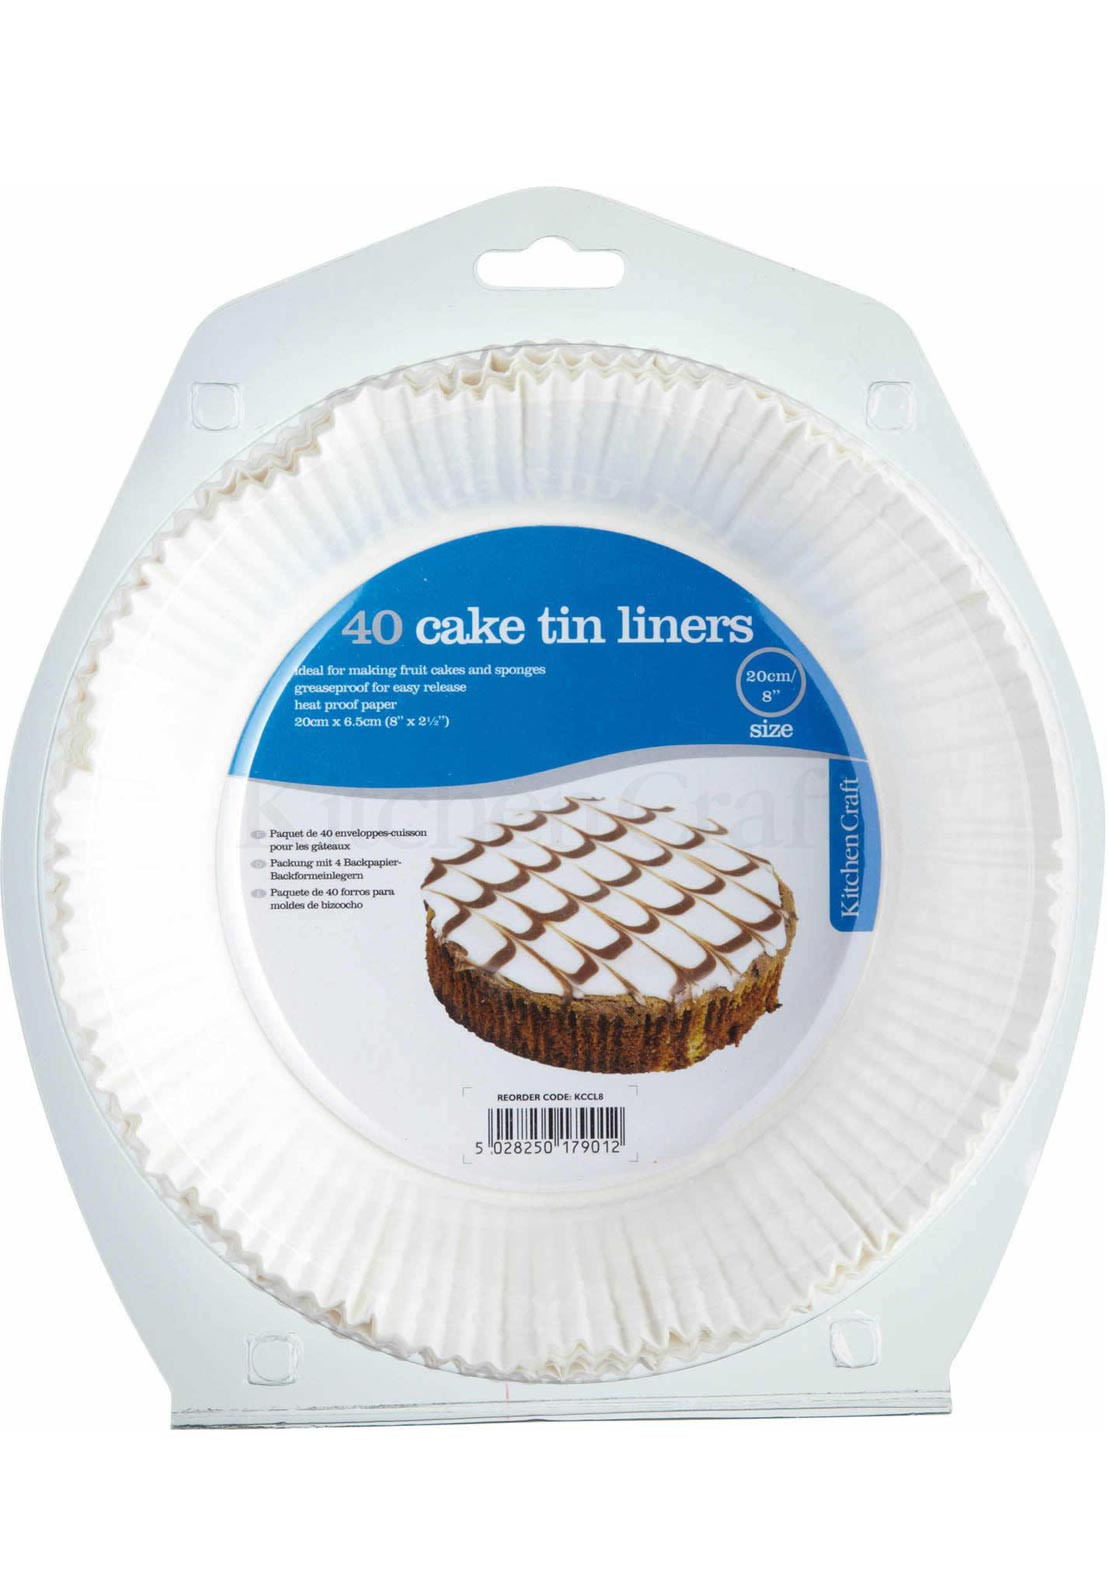 Kitchen Craft 40 Cake Tin Liners